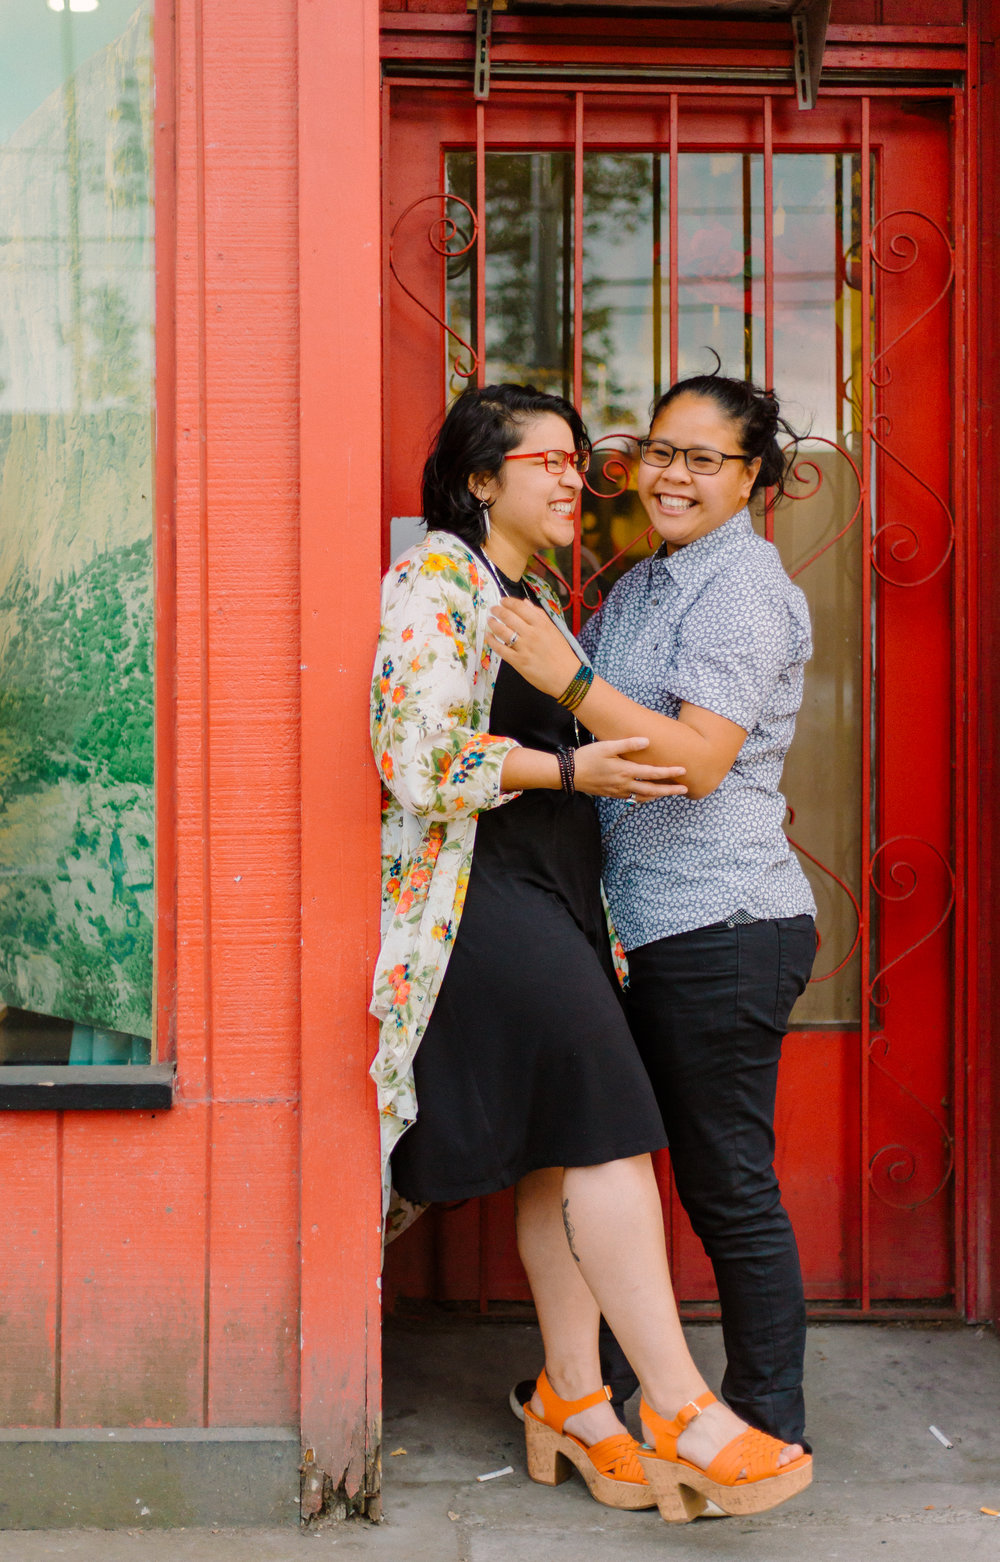 Vanessa + Rachel - sunset in southeast portland